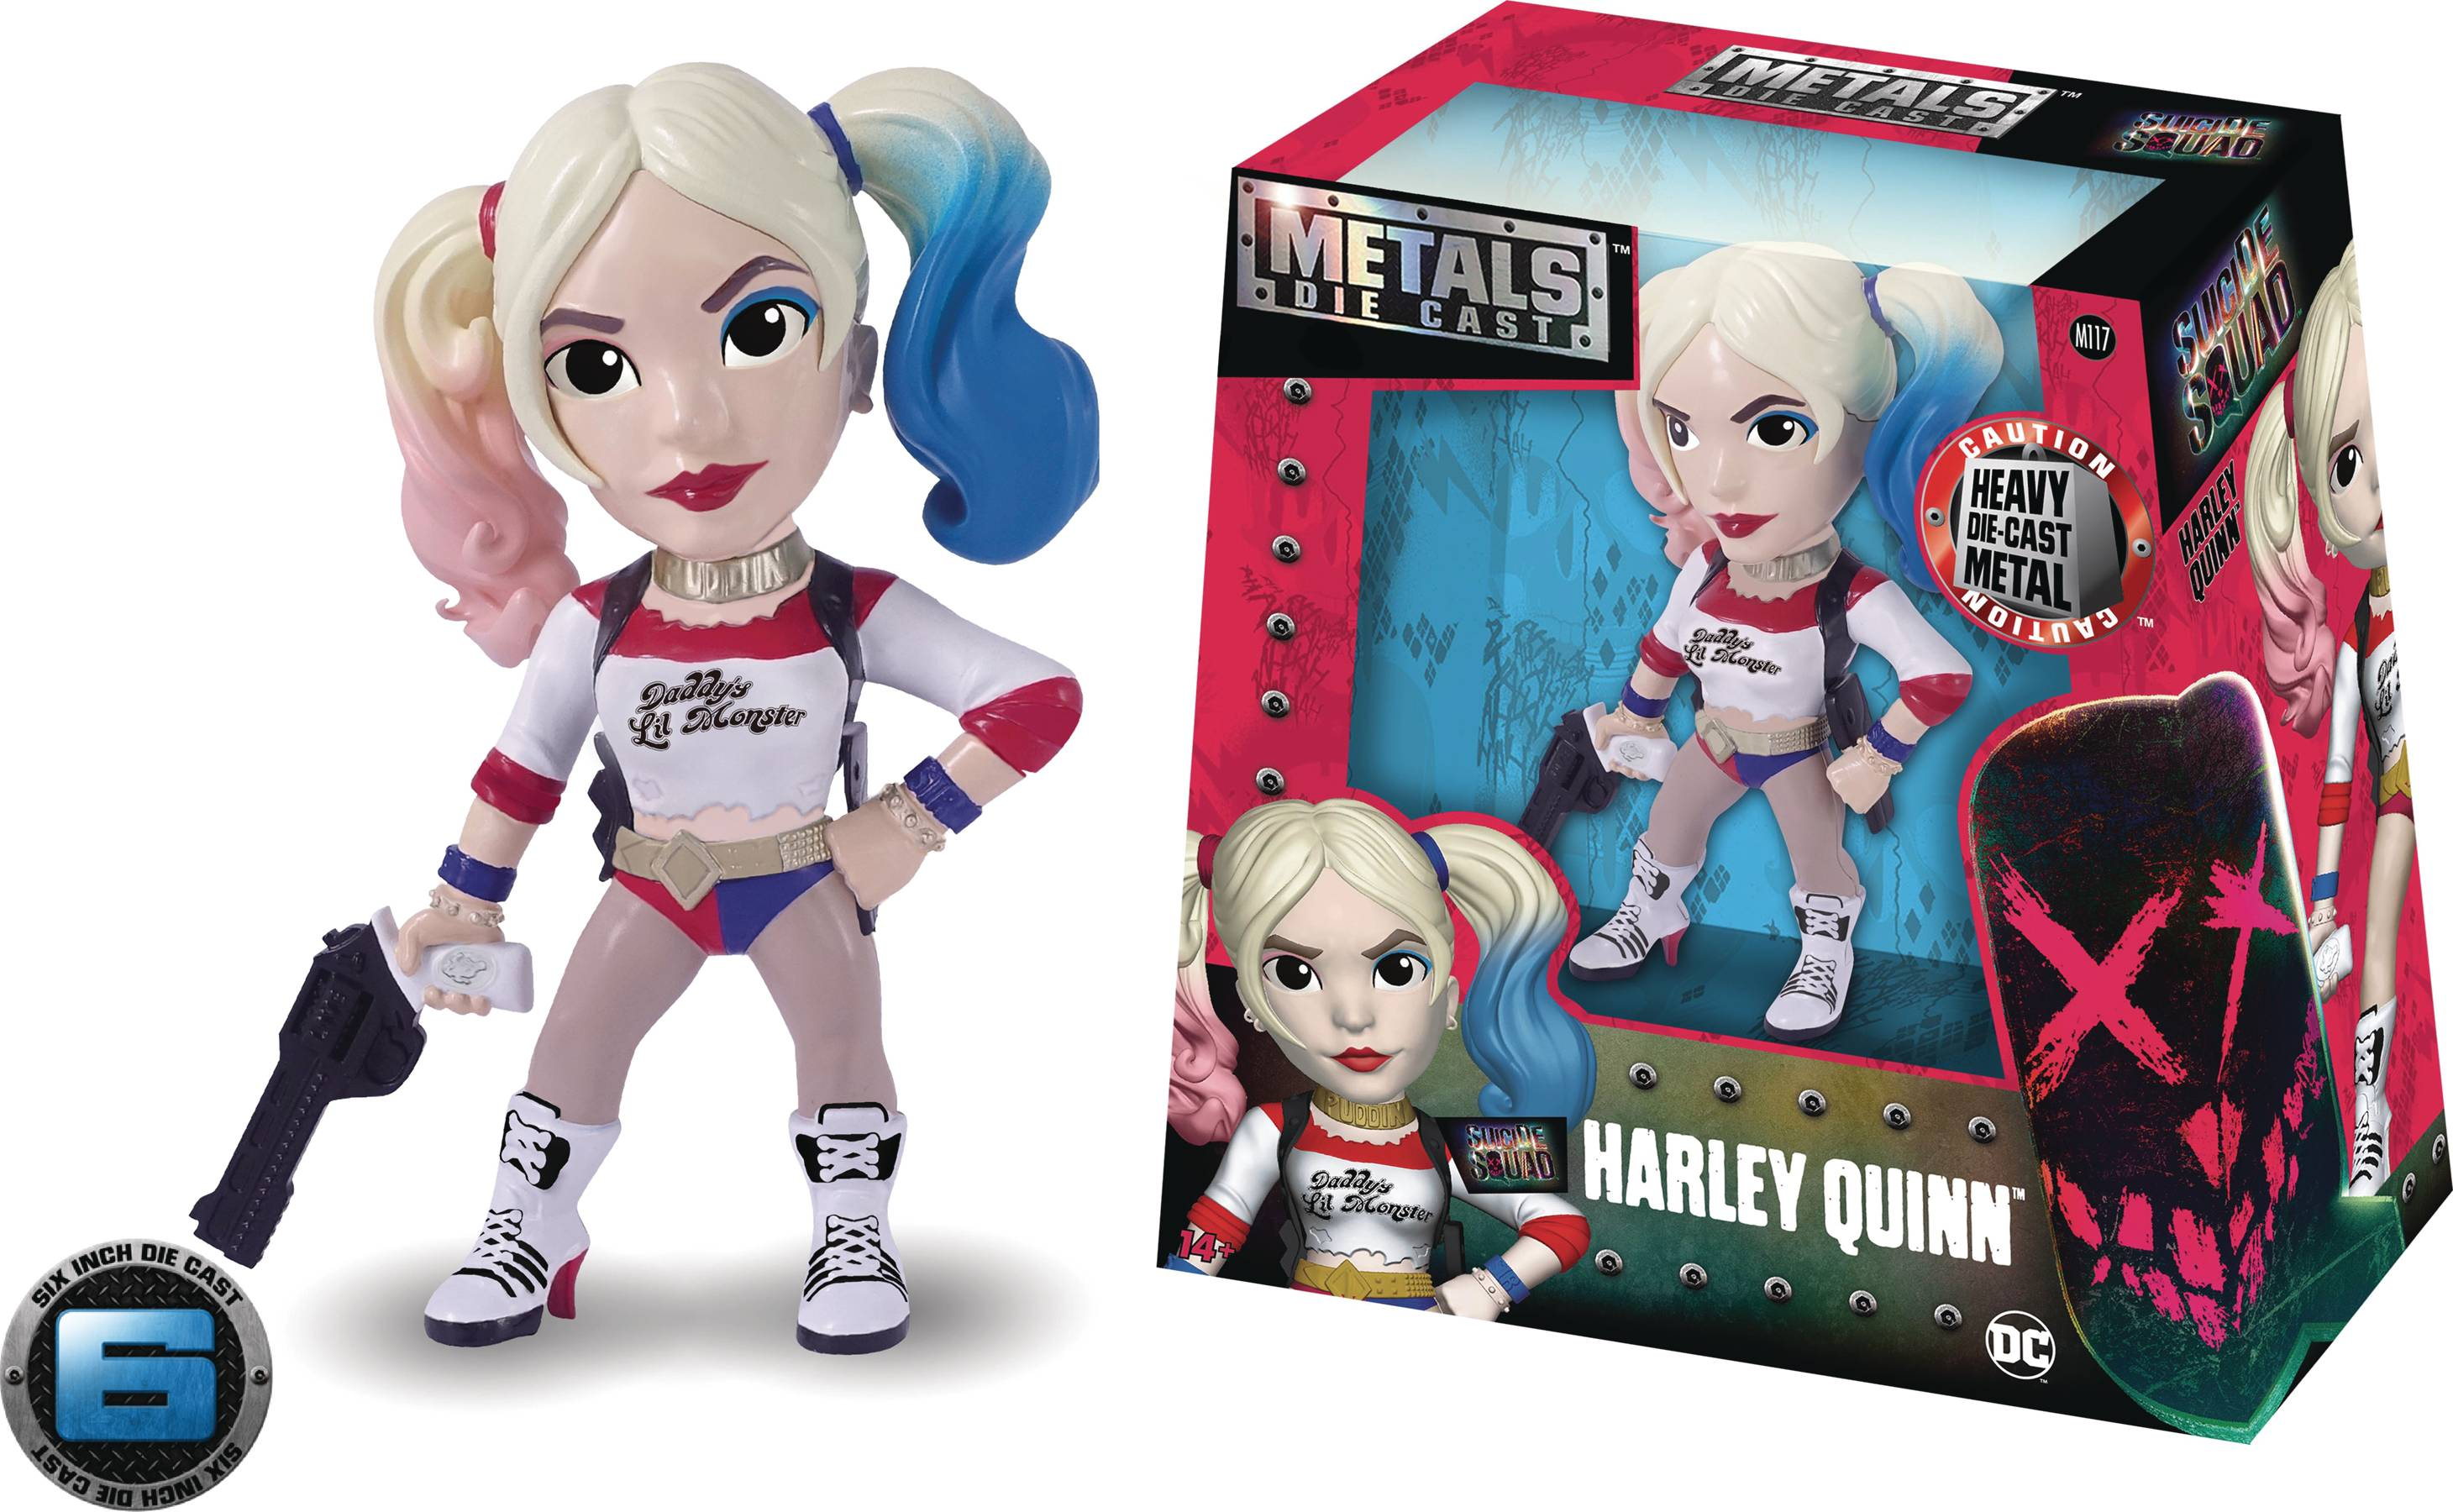 METALS SUICIDE SQUAD HARLEY QUINN 6IN DIE-CAST FIG